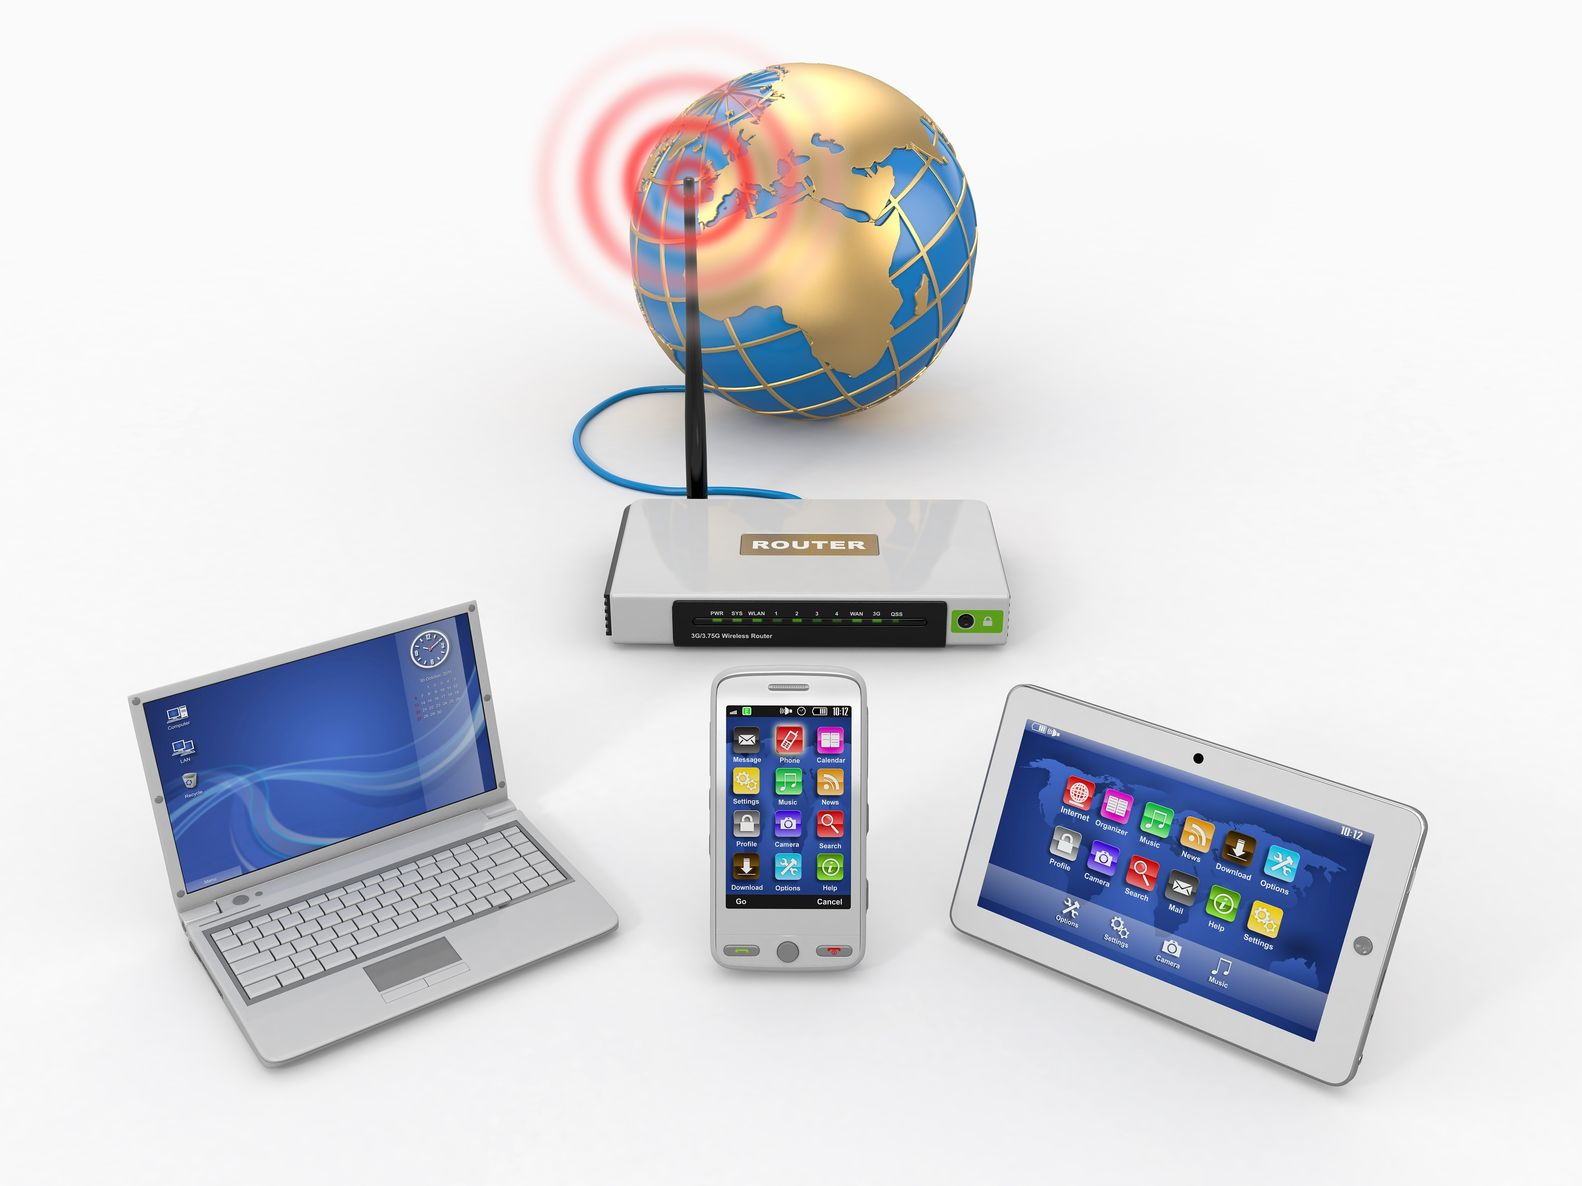 http://www.slt.co/Education/News/Images/Wireless%20Devices%2013613392_hiweb.jpg